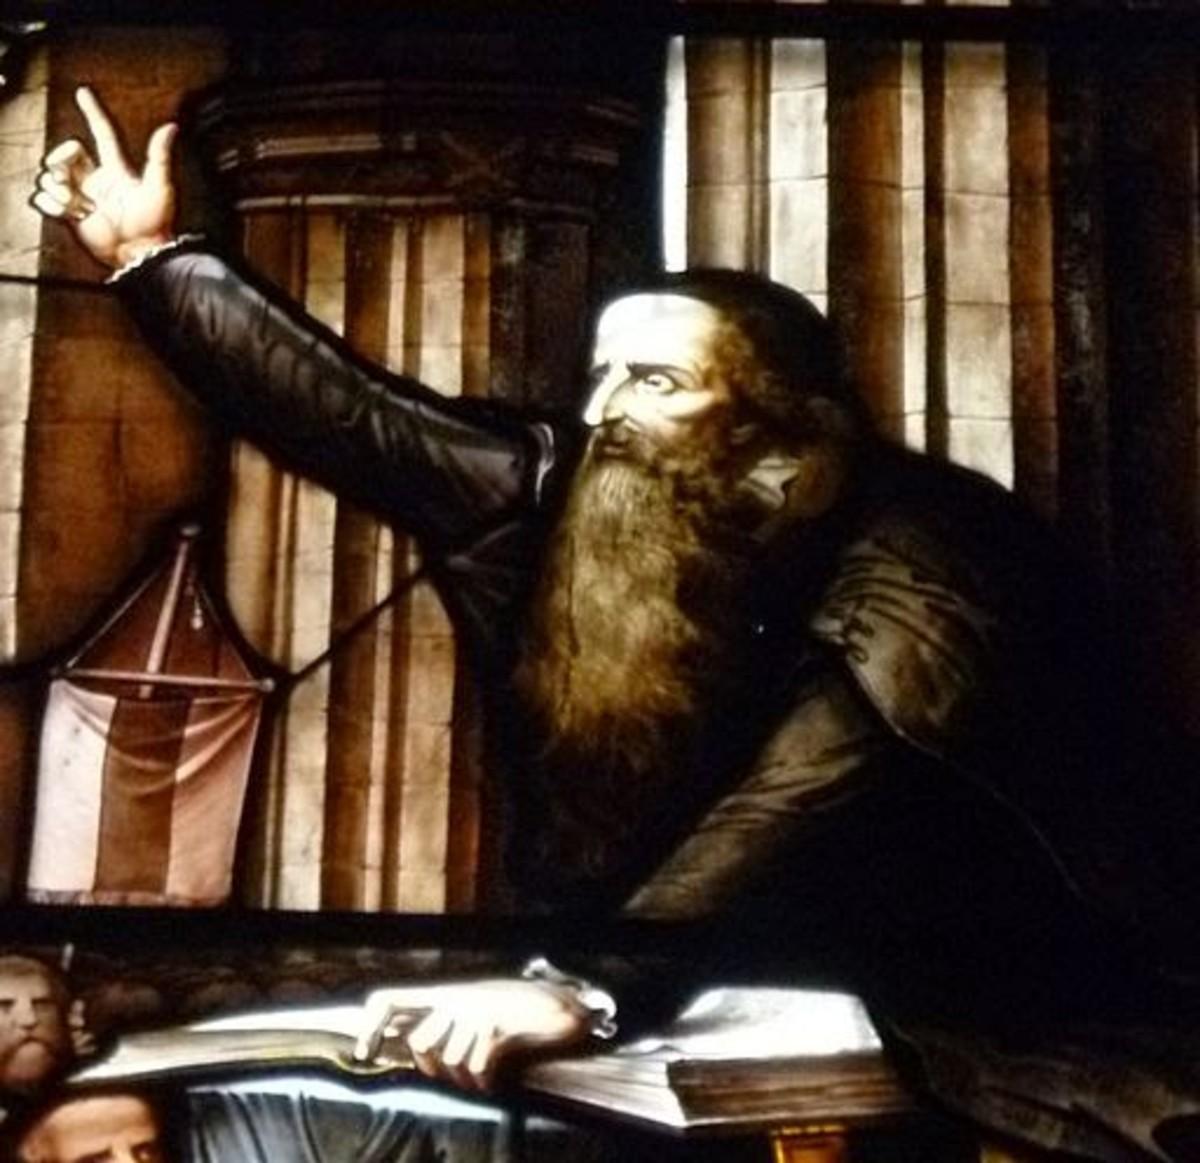 Why was King James so obsessed with witchcraft?